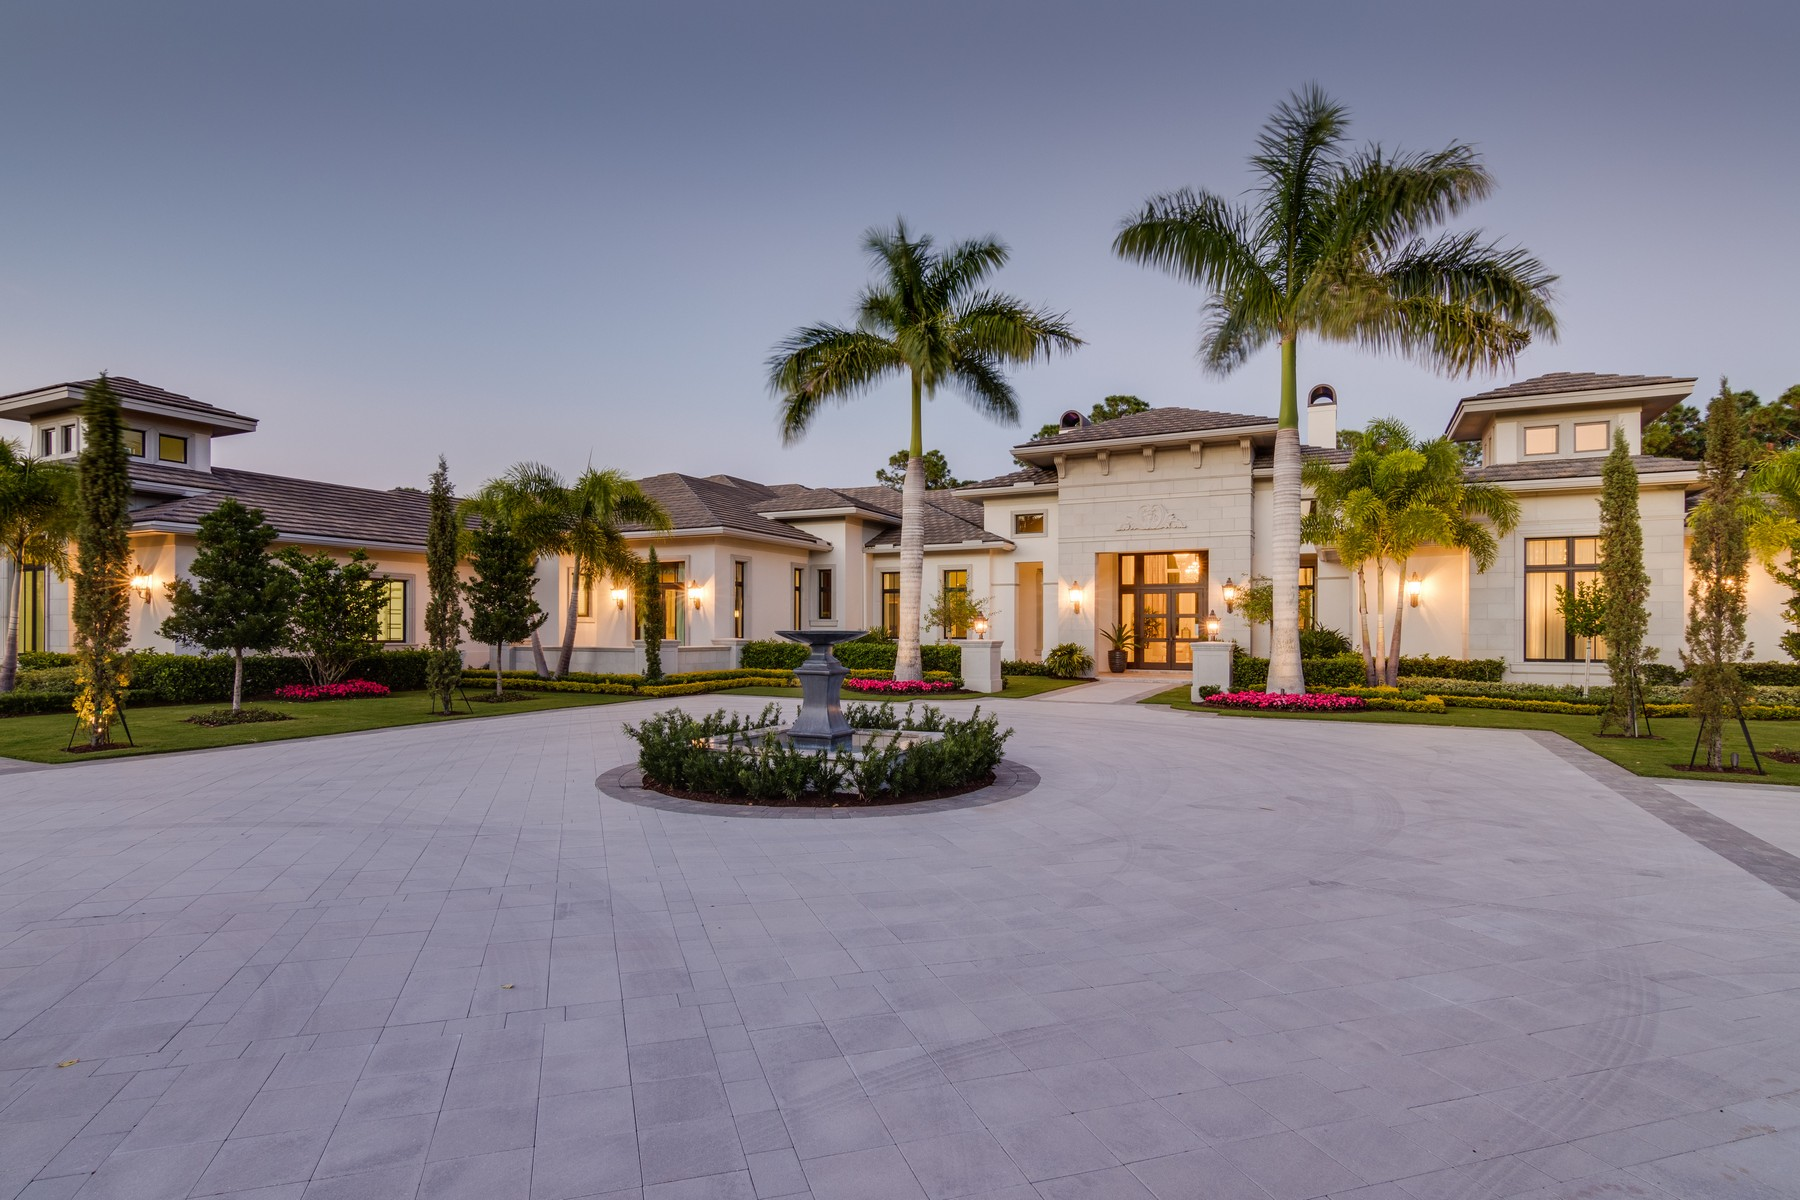 Additional photo for property listing at 12220 Tillinghast Circle  Palm Beach Gardens, Florida 33418 United States